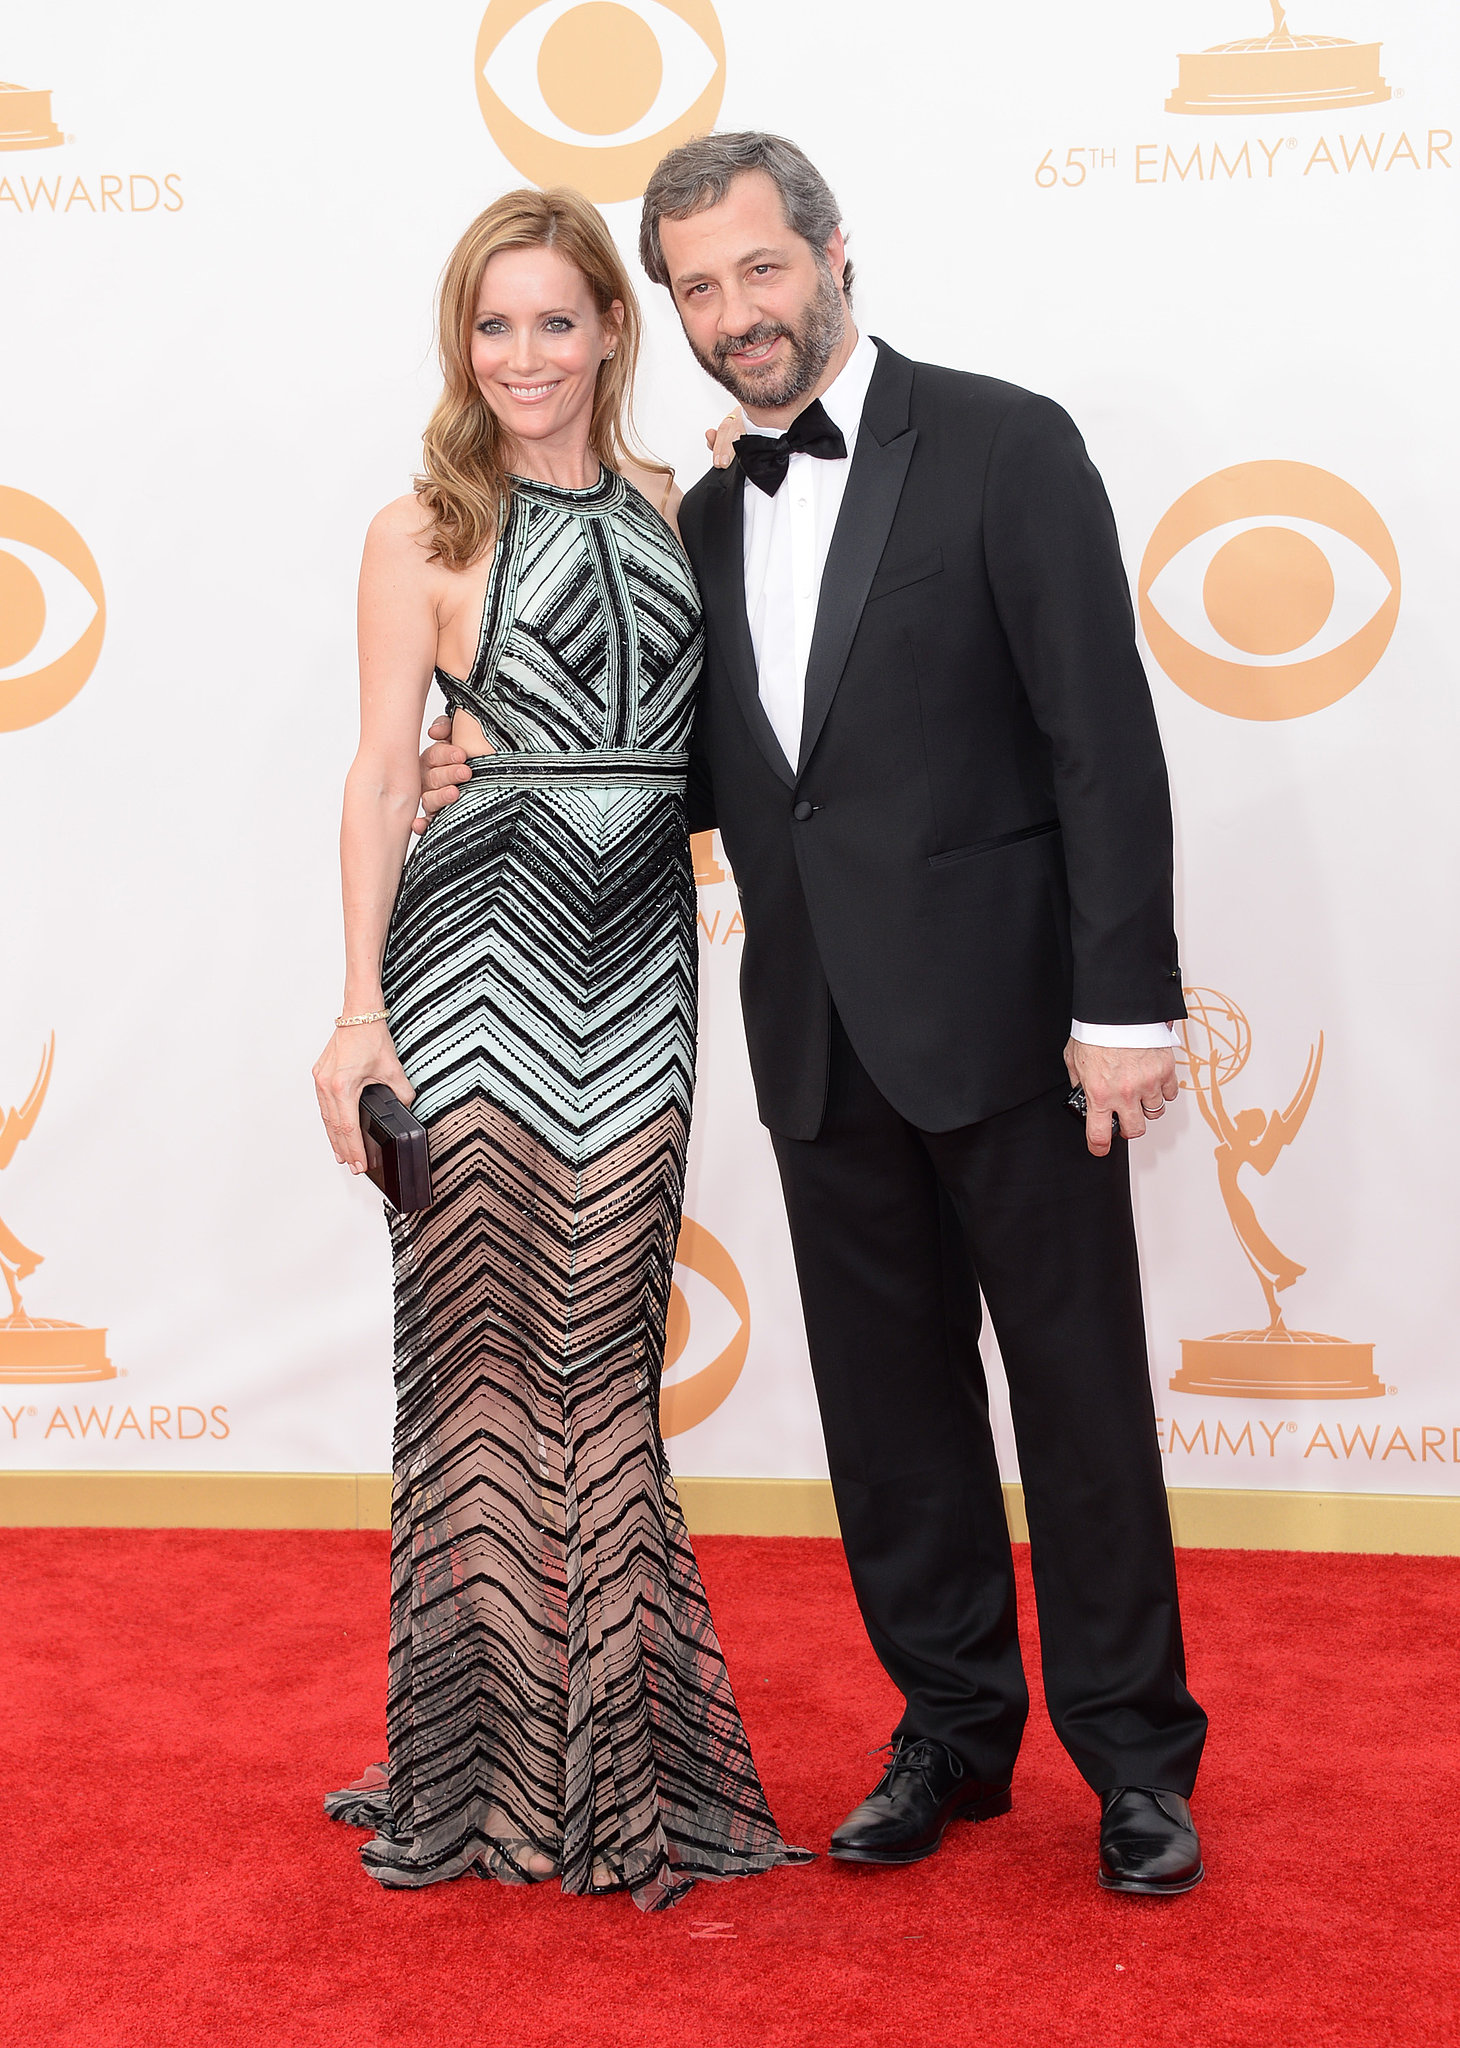 Judd Apatow and Leslie Mann posed for pictures together at the Emmys.